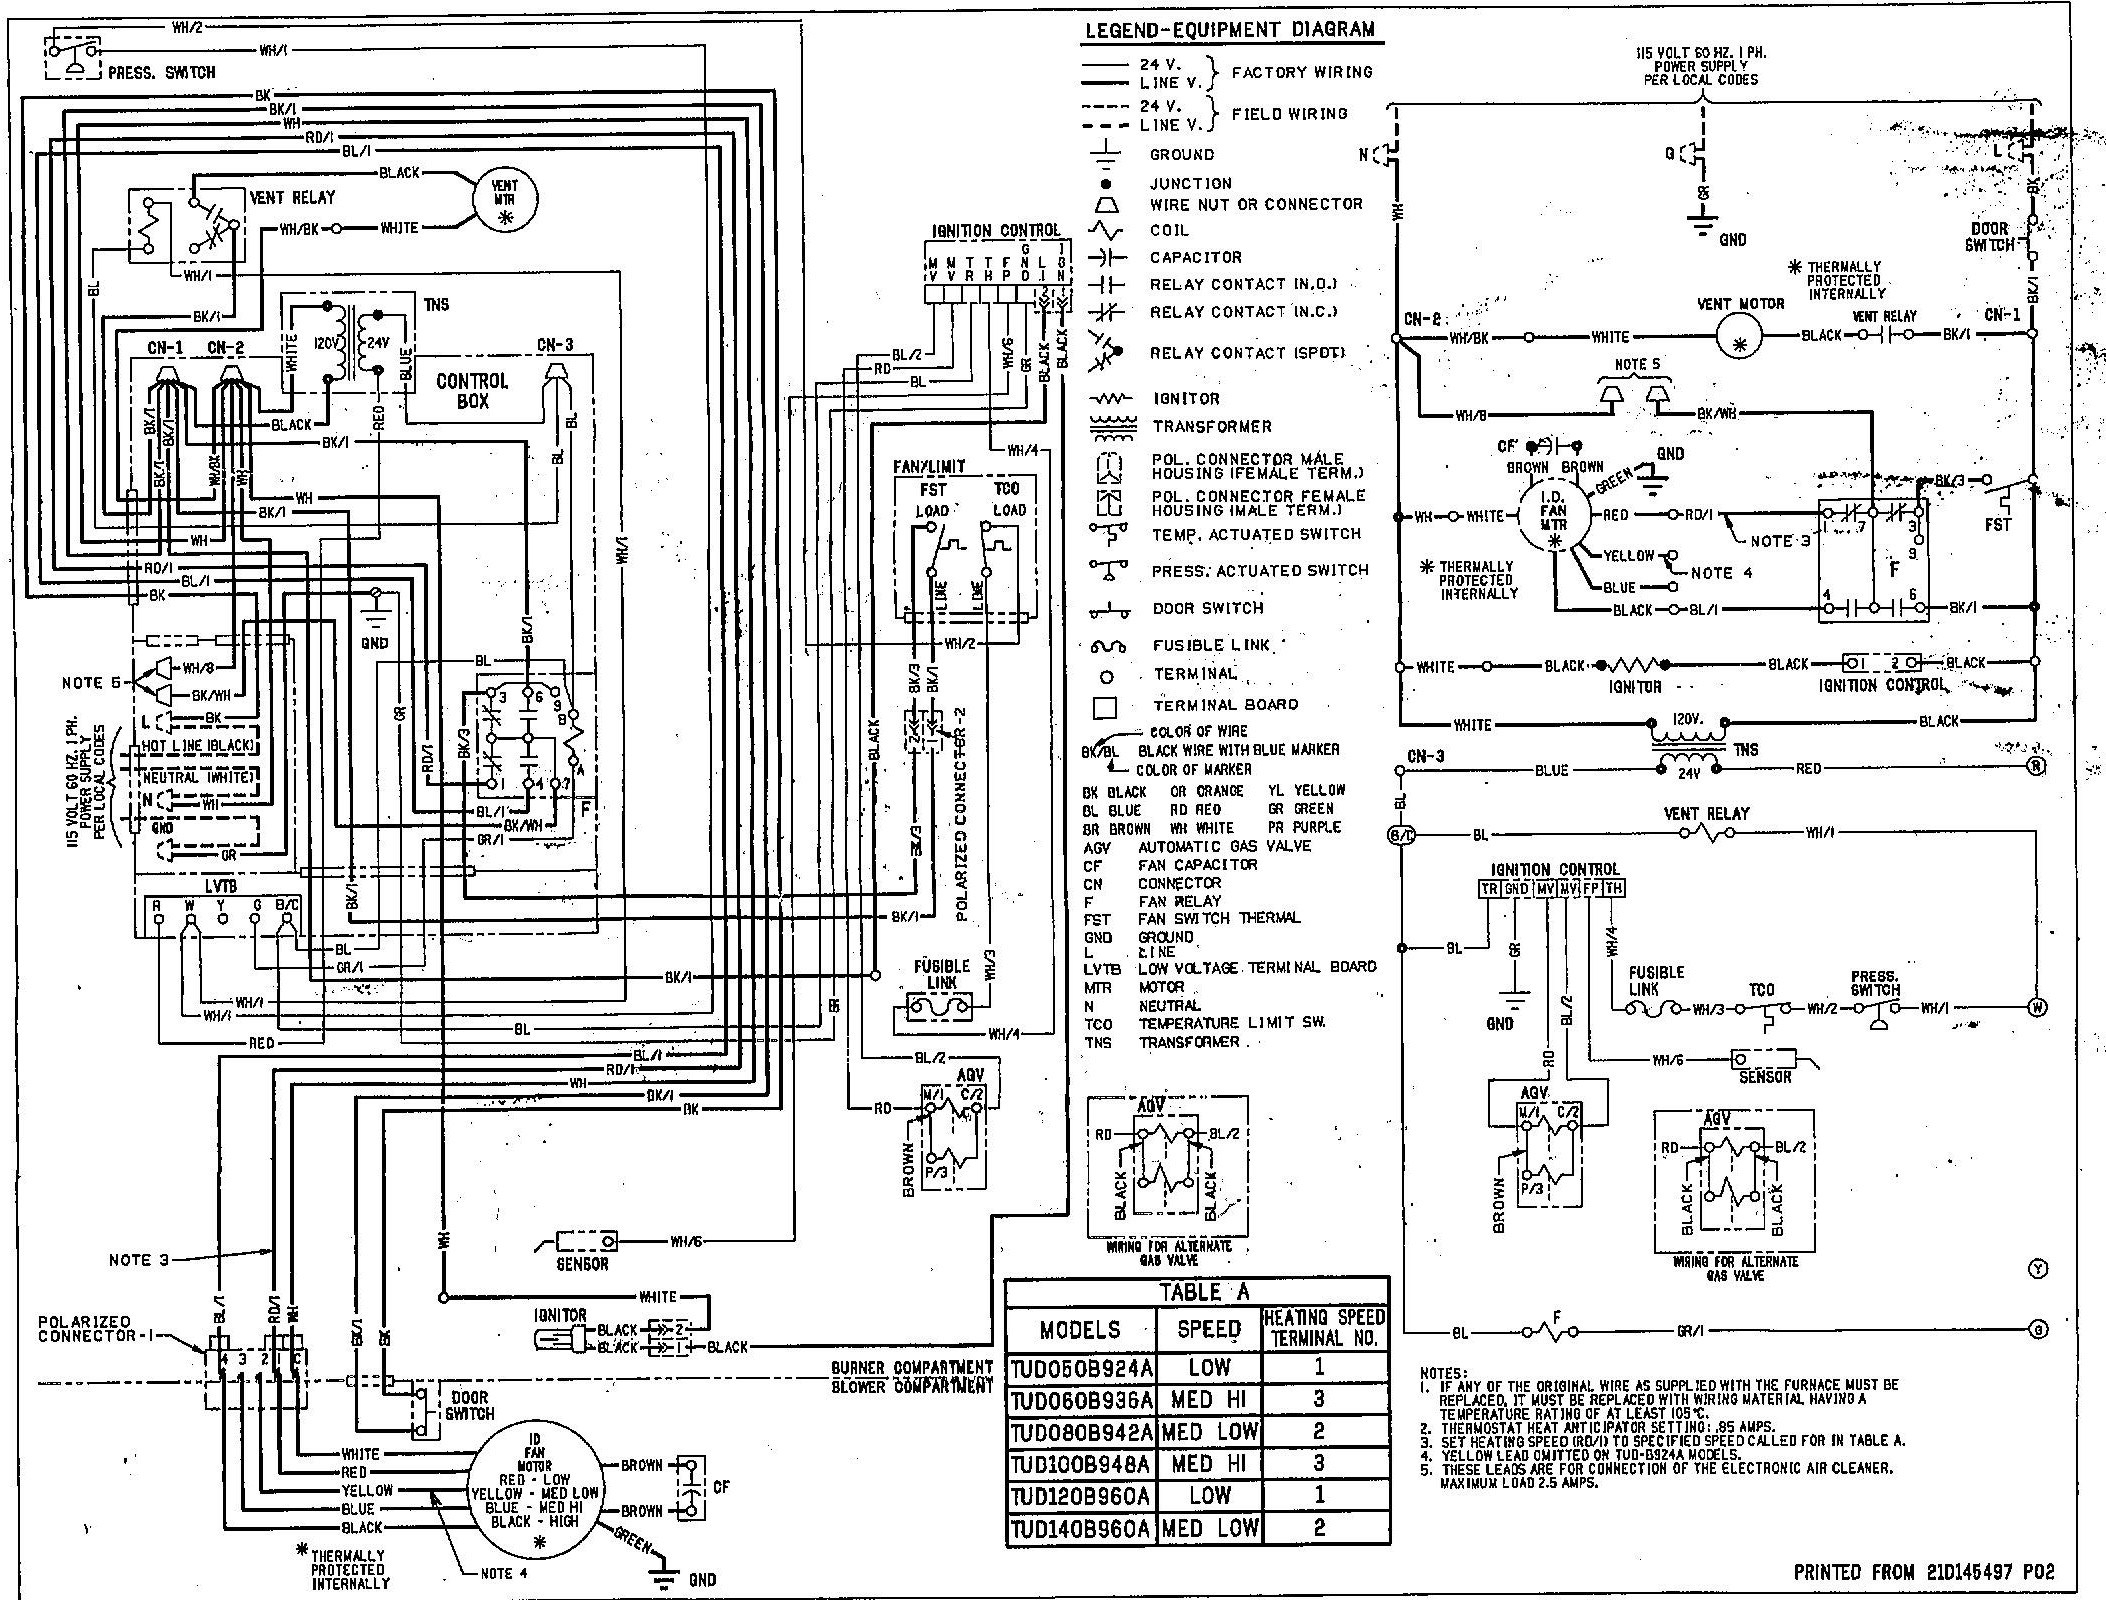 trane ycd 060 wiring diagram Download-trane ycd 060 wiring diagram Collection Trane pressor Wiring Diagram Throughout 19 r DOWNLOAD Wiring Diagram Pics Detail Name trane ycd 060 1-p